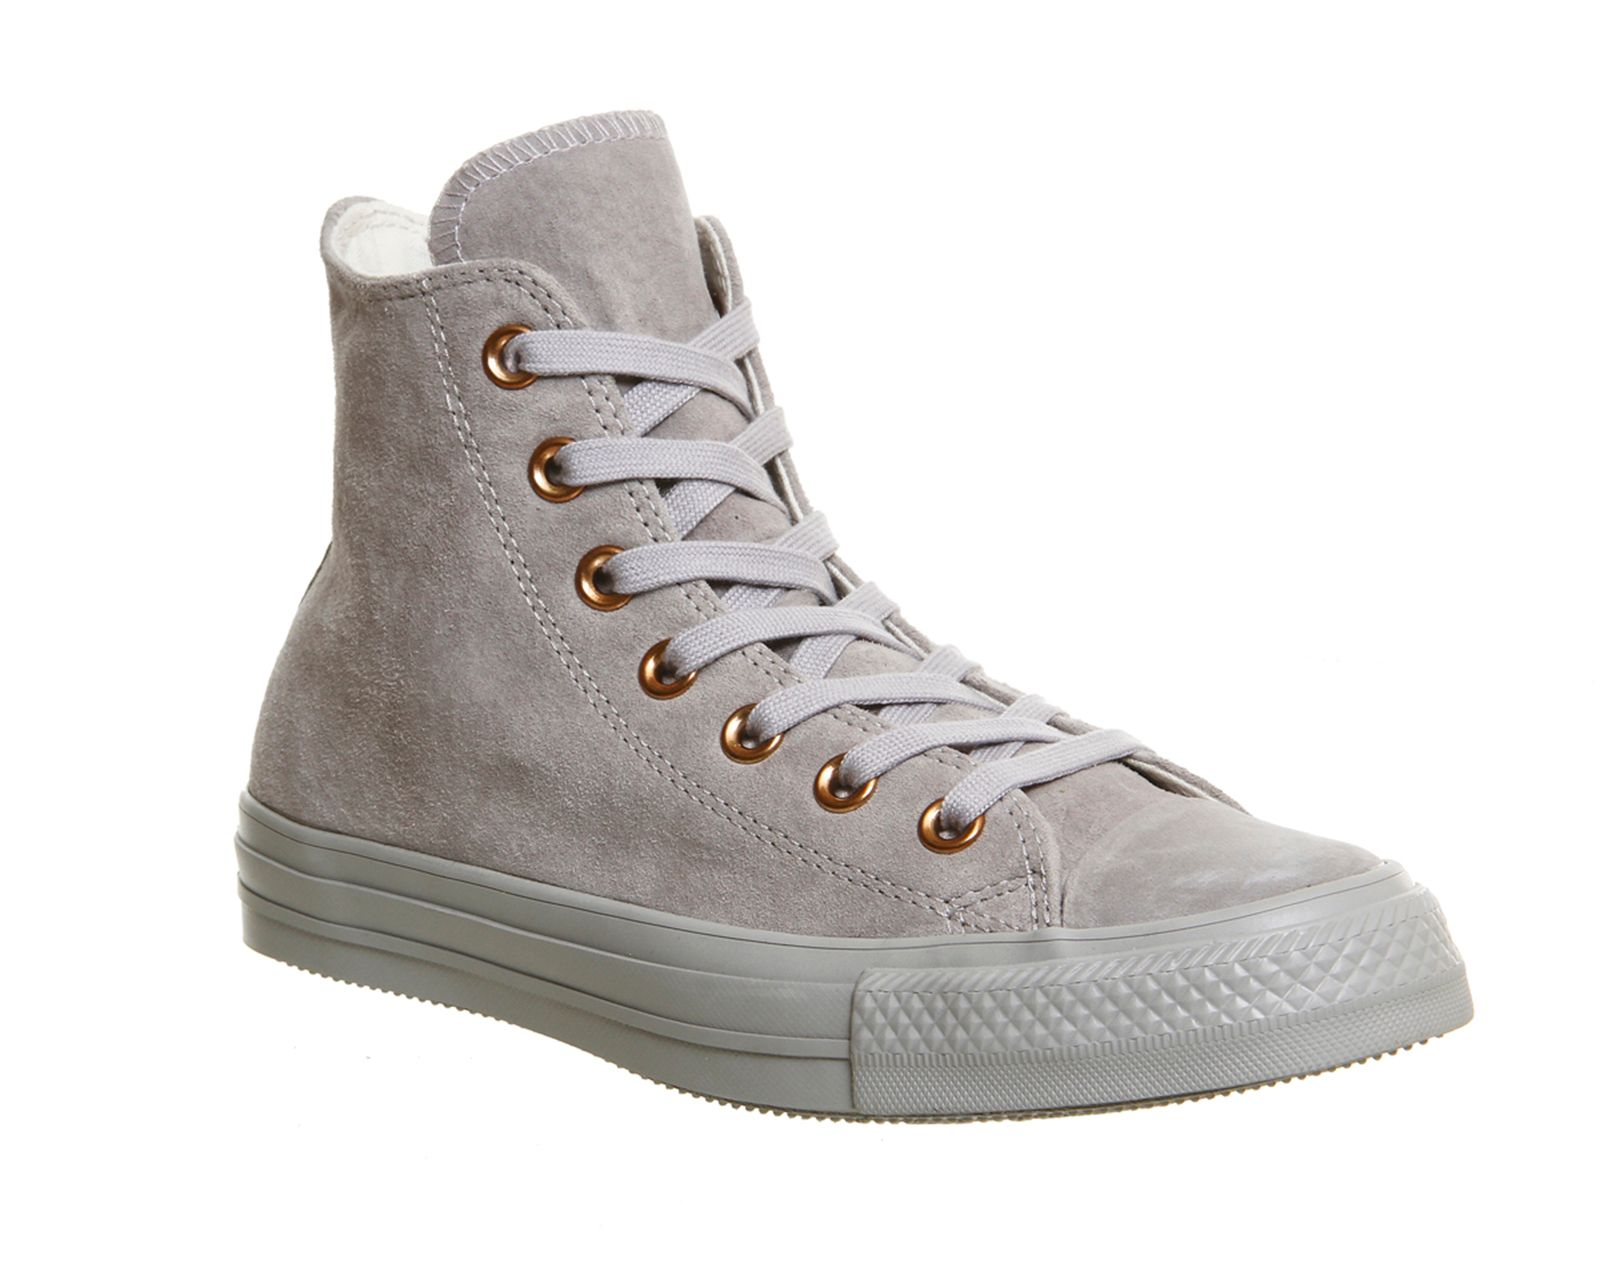 Converse All Star Hi Leather Trainers, Grey